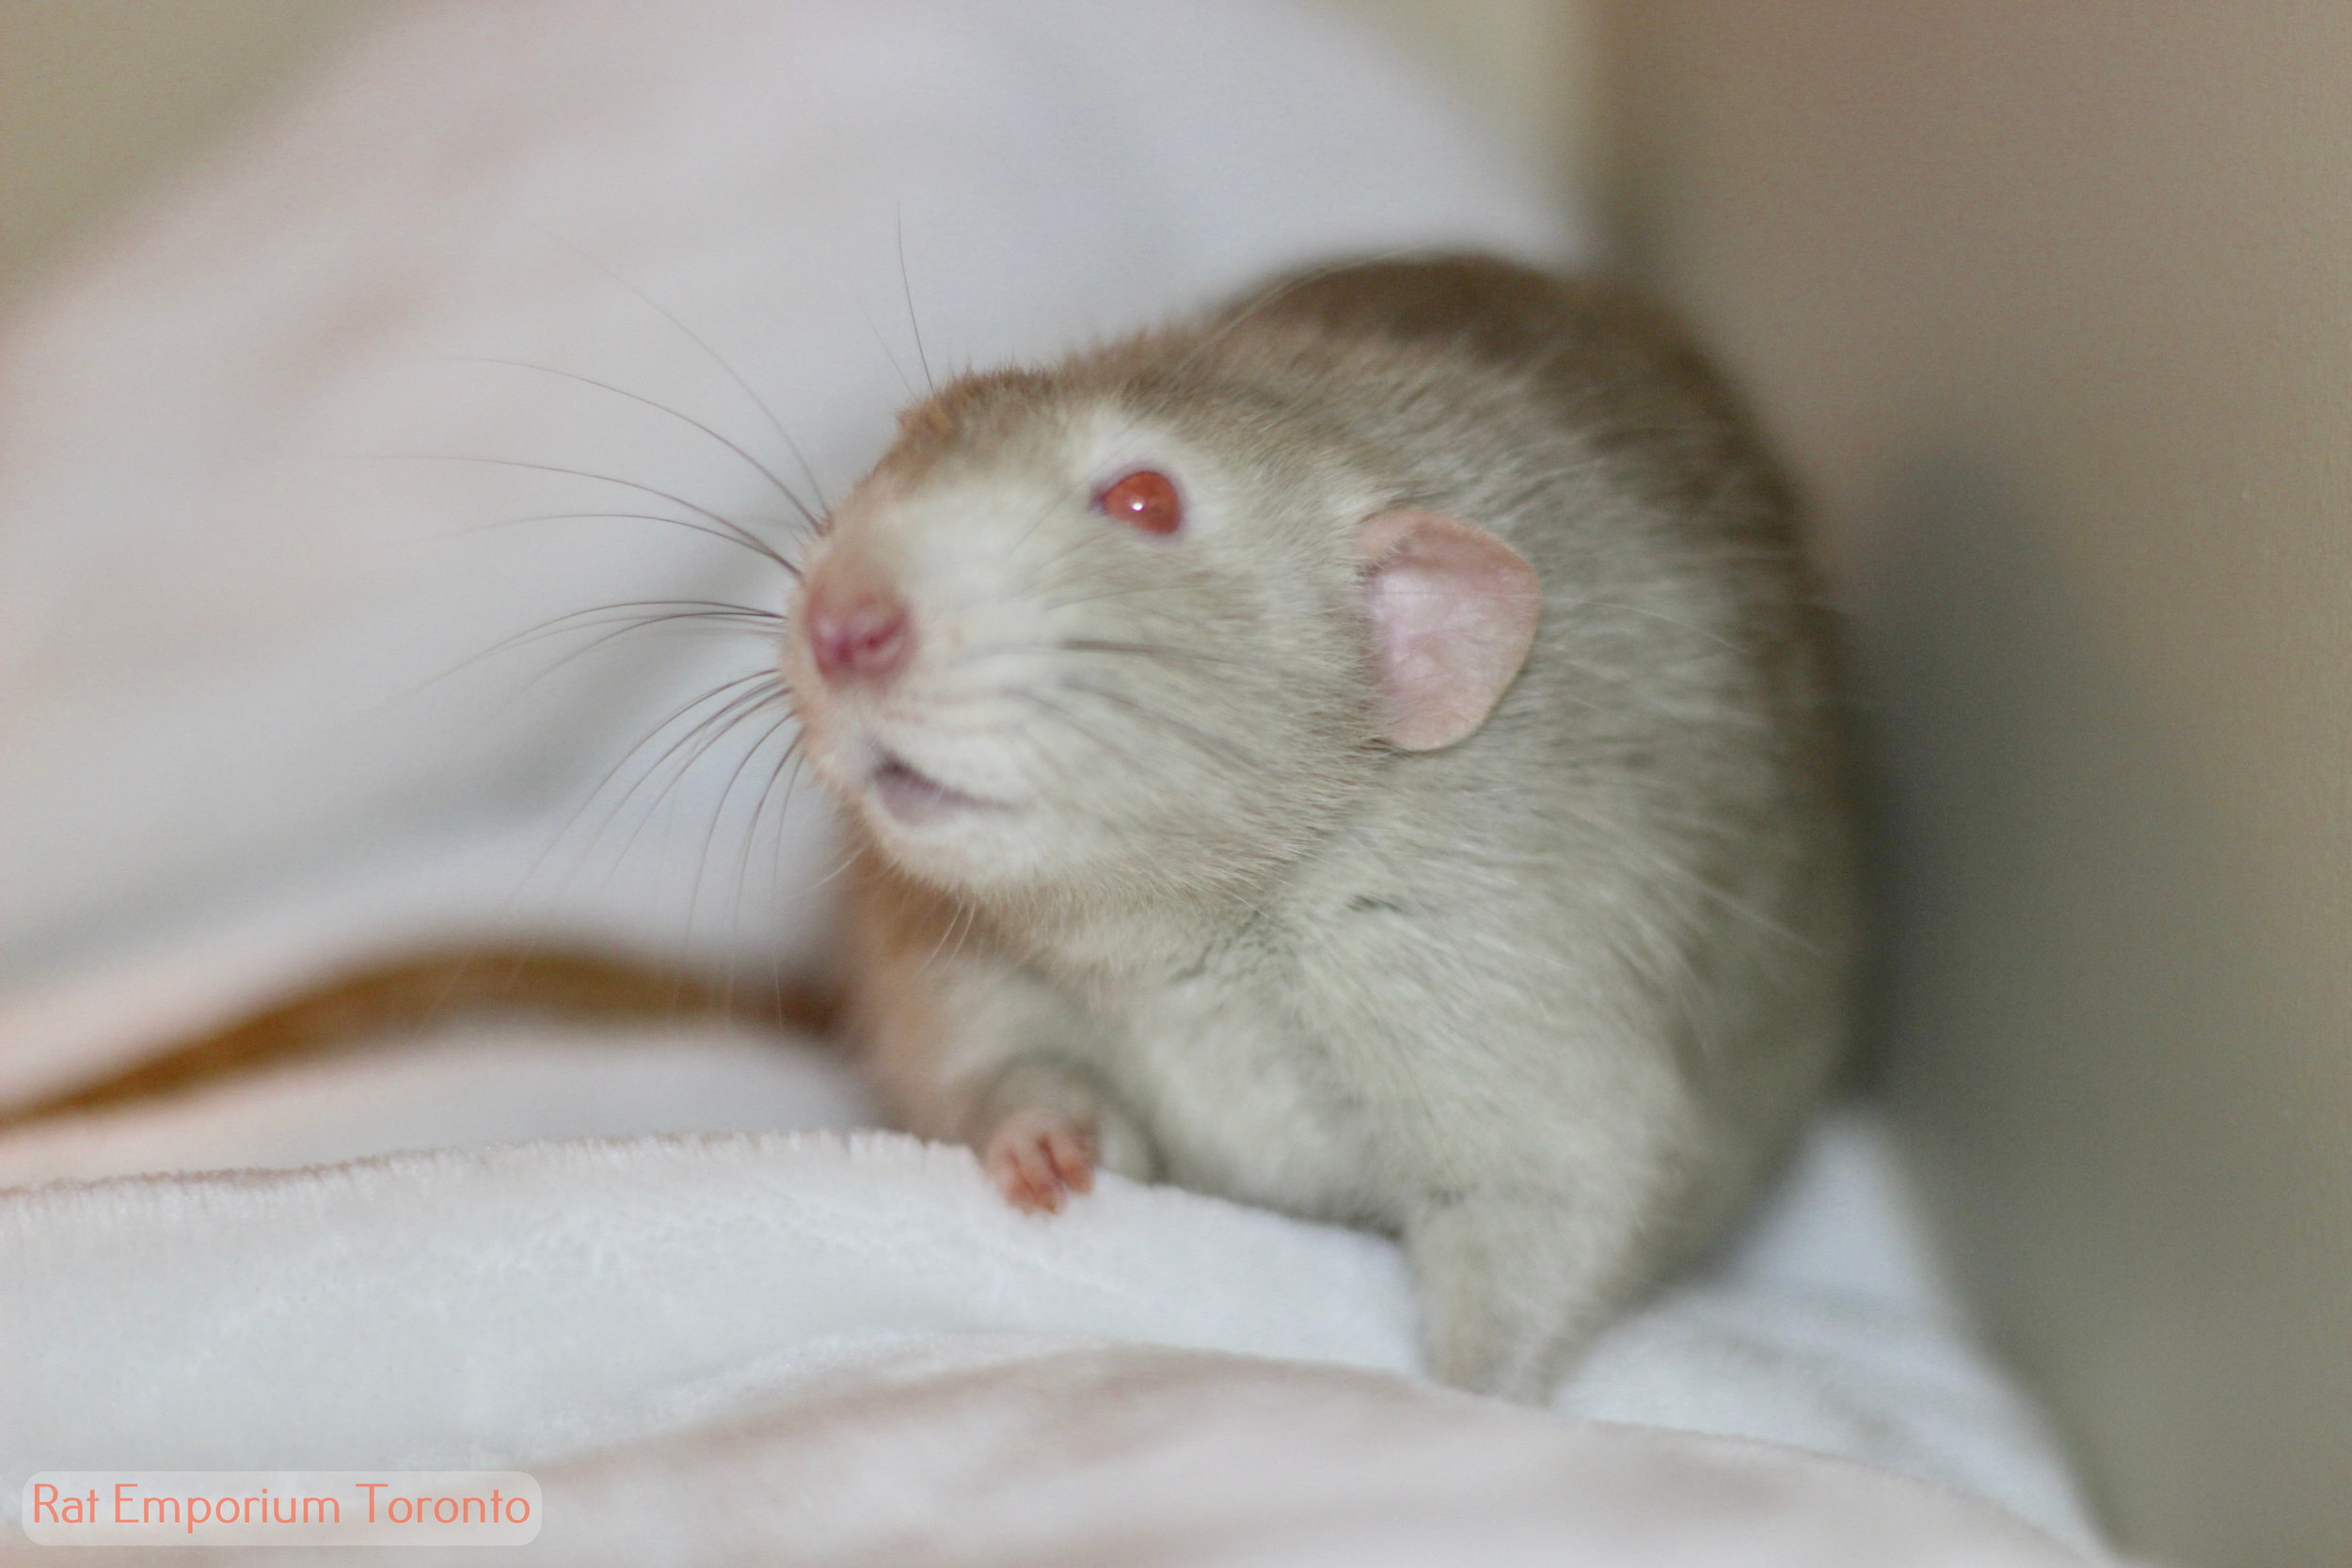 male re mink marten dumbo rat, male, unmarkedovercoming rat problems and stigma with cute pet rats